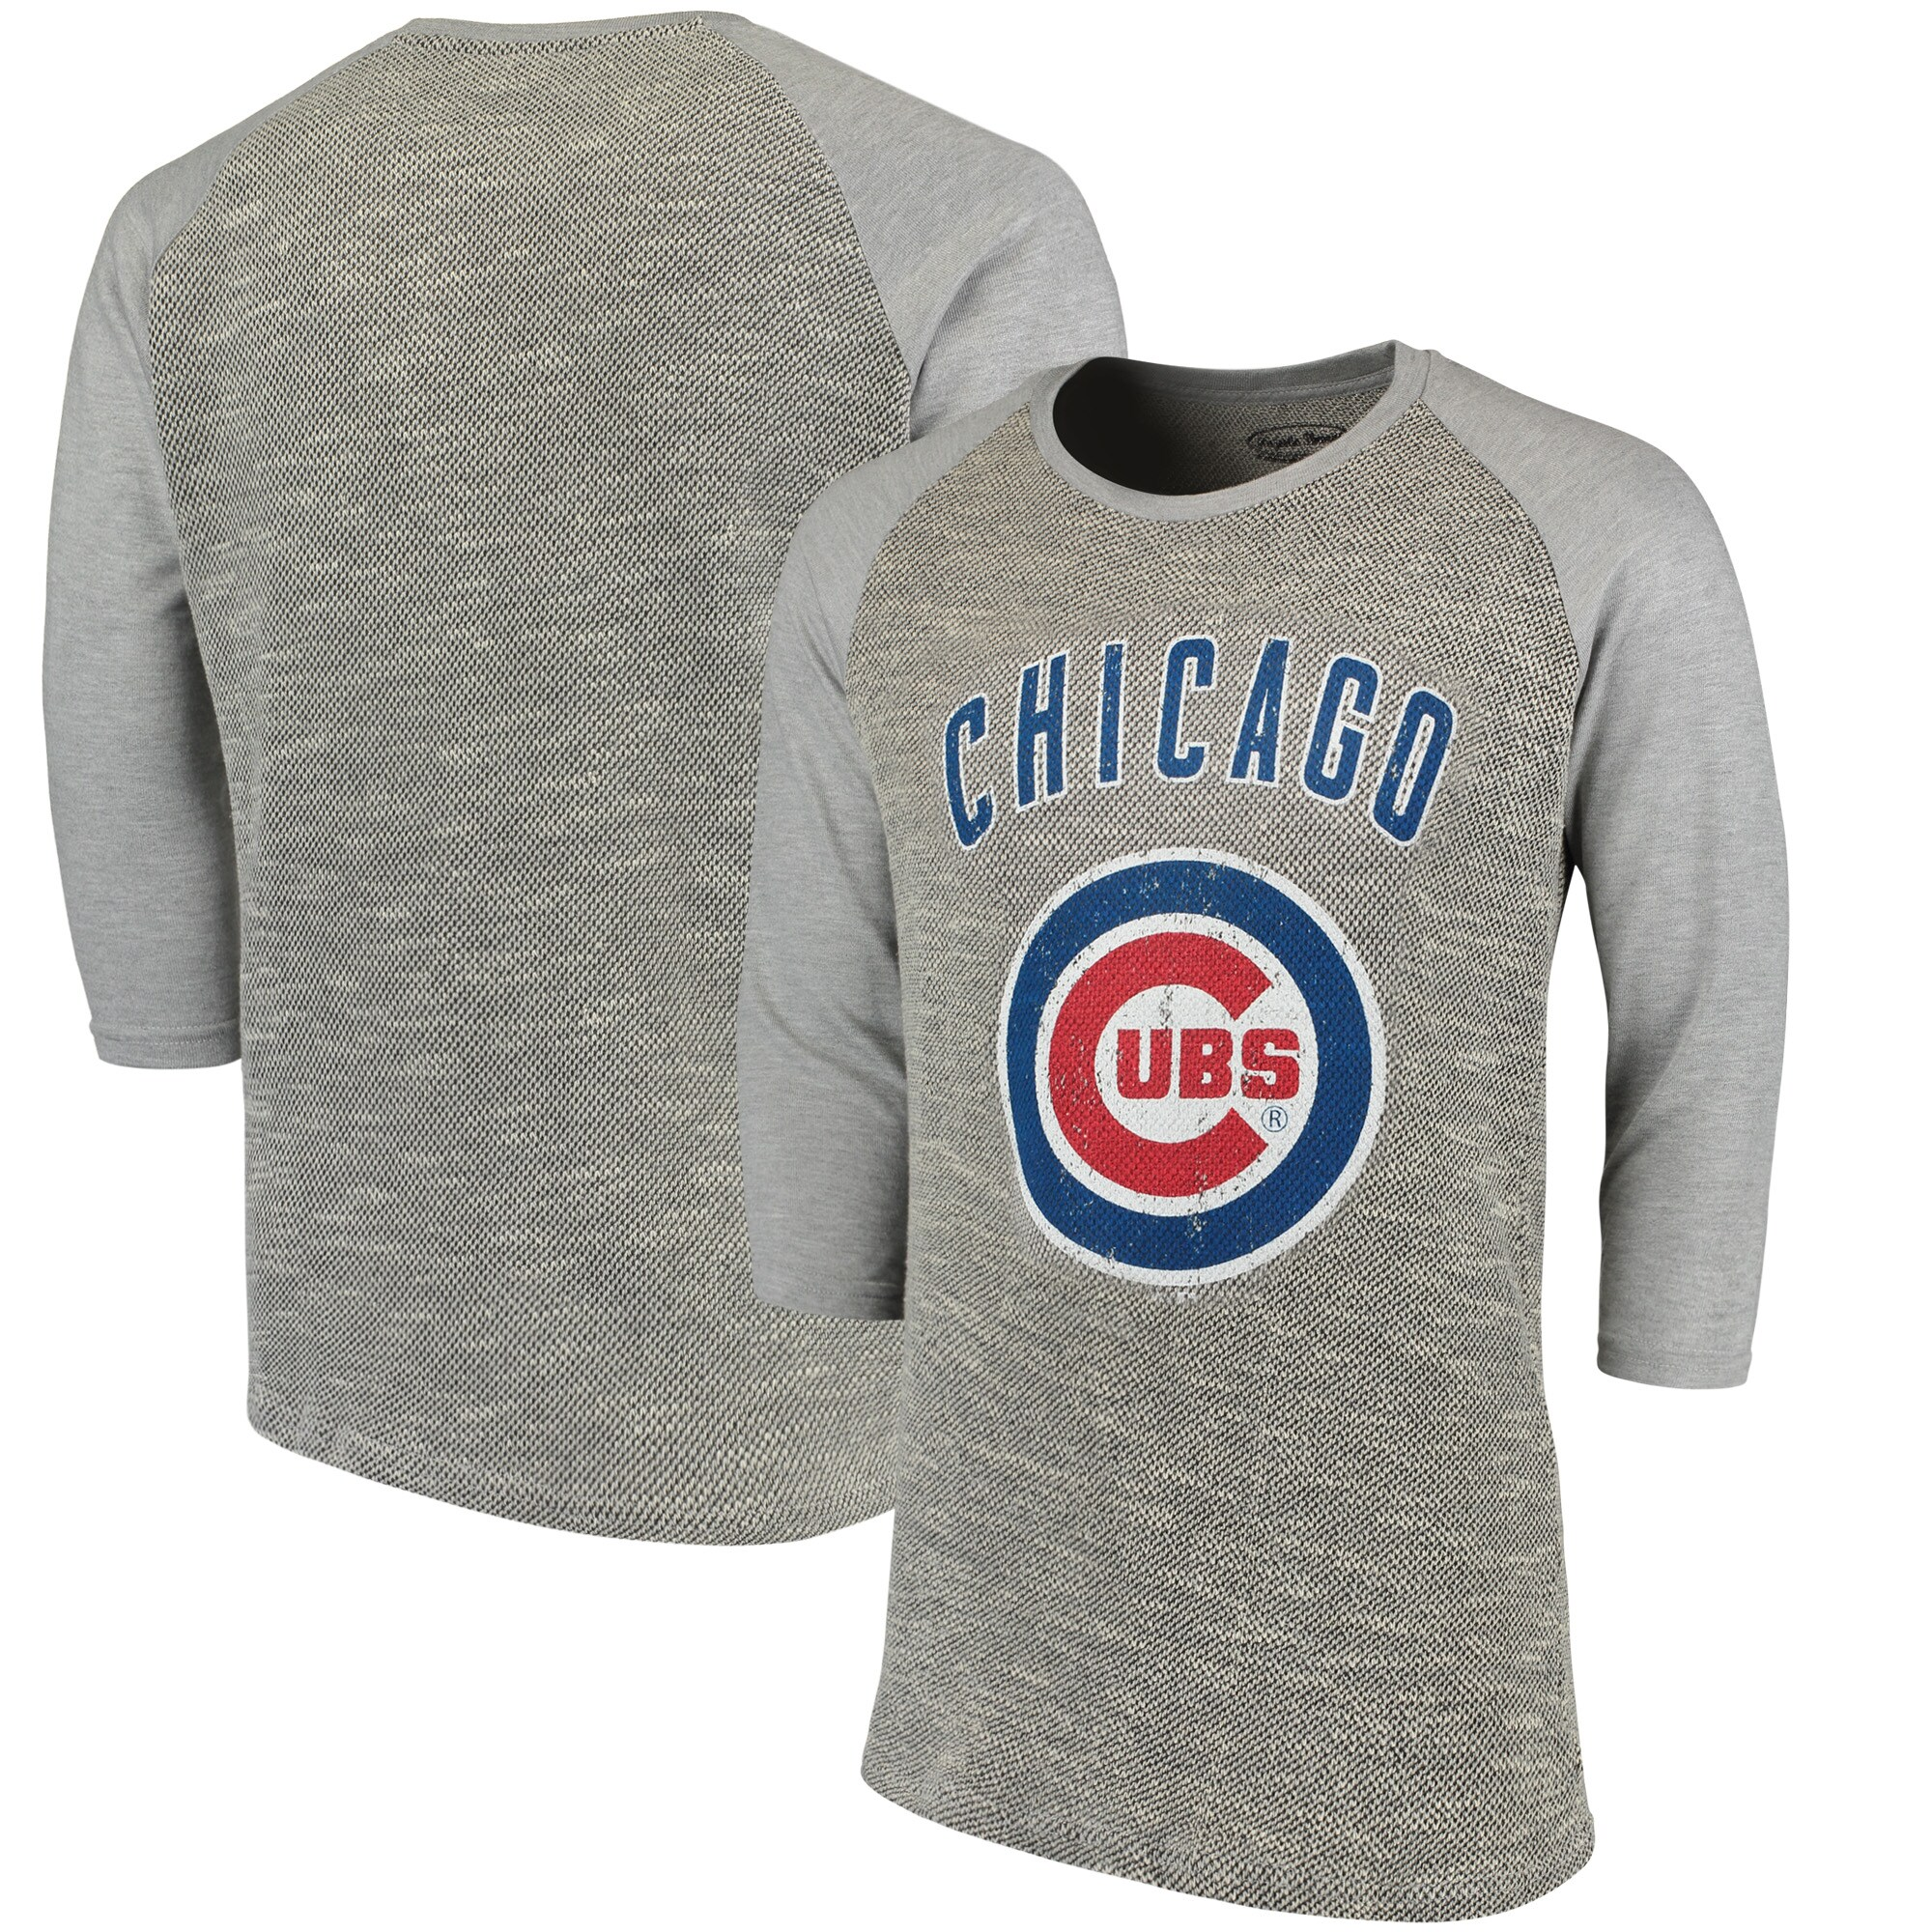 Chicago Cubs Majestic Threads Tri-Yarn French Terry 3/4-Sleeve Raglan T-Shirt - Gray